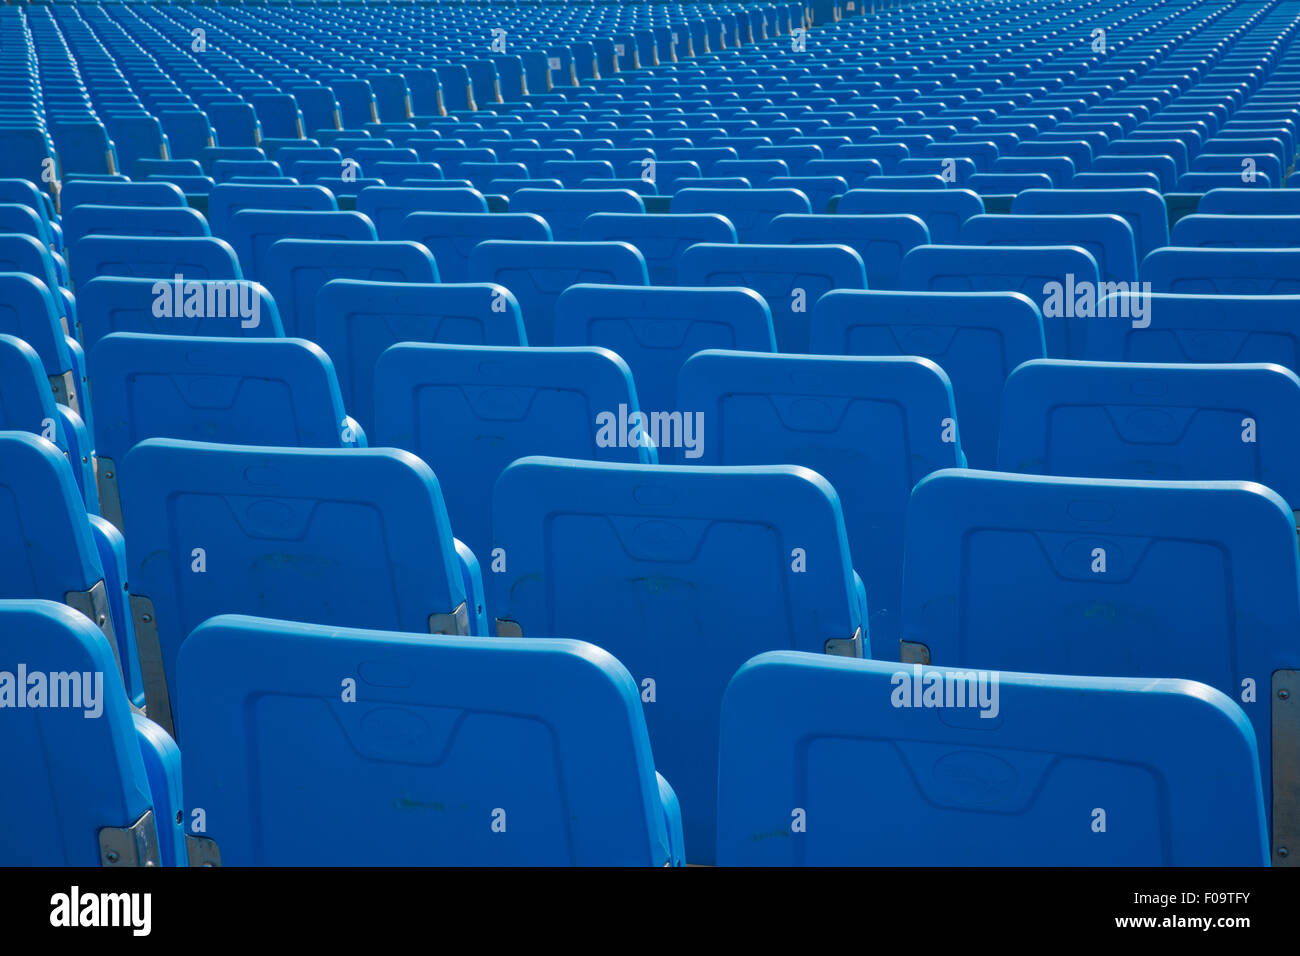 Rows of blue chairs - Stock Image